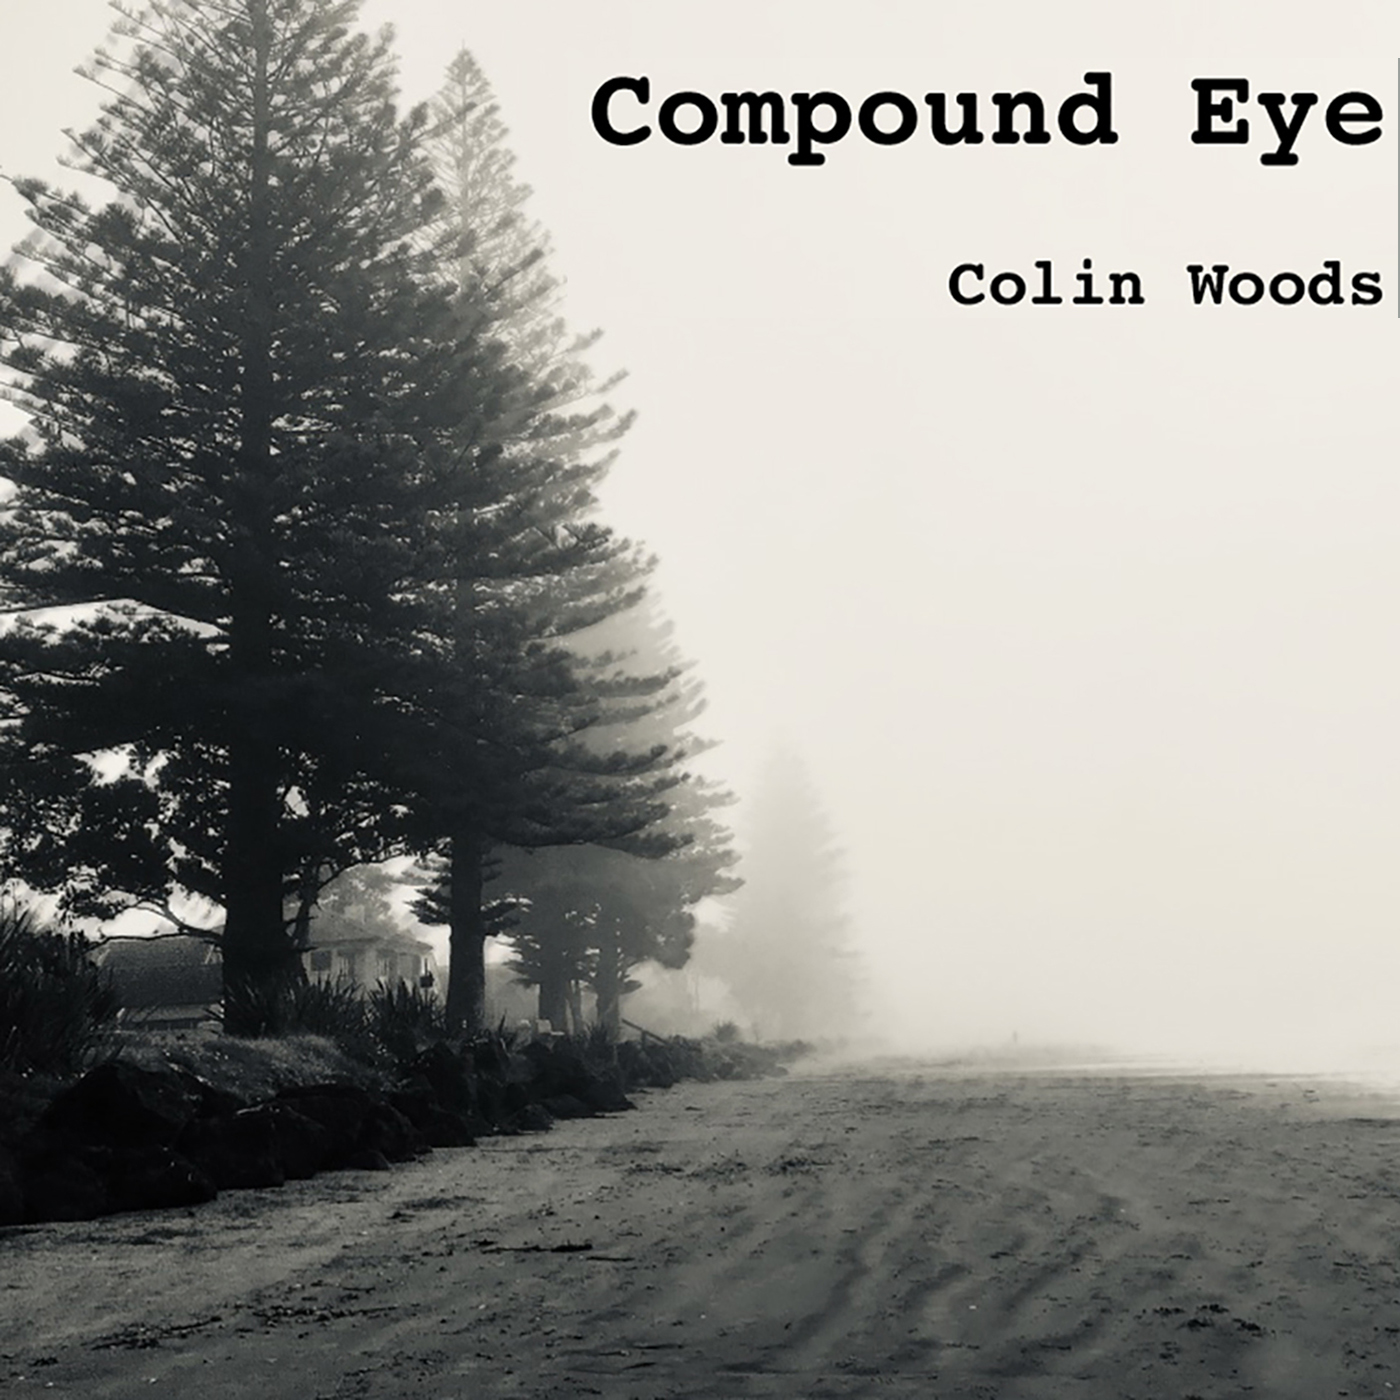 New Album 'Compound Eye' released 14 Jan 2020